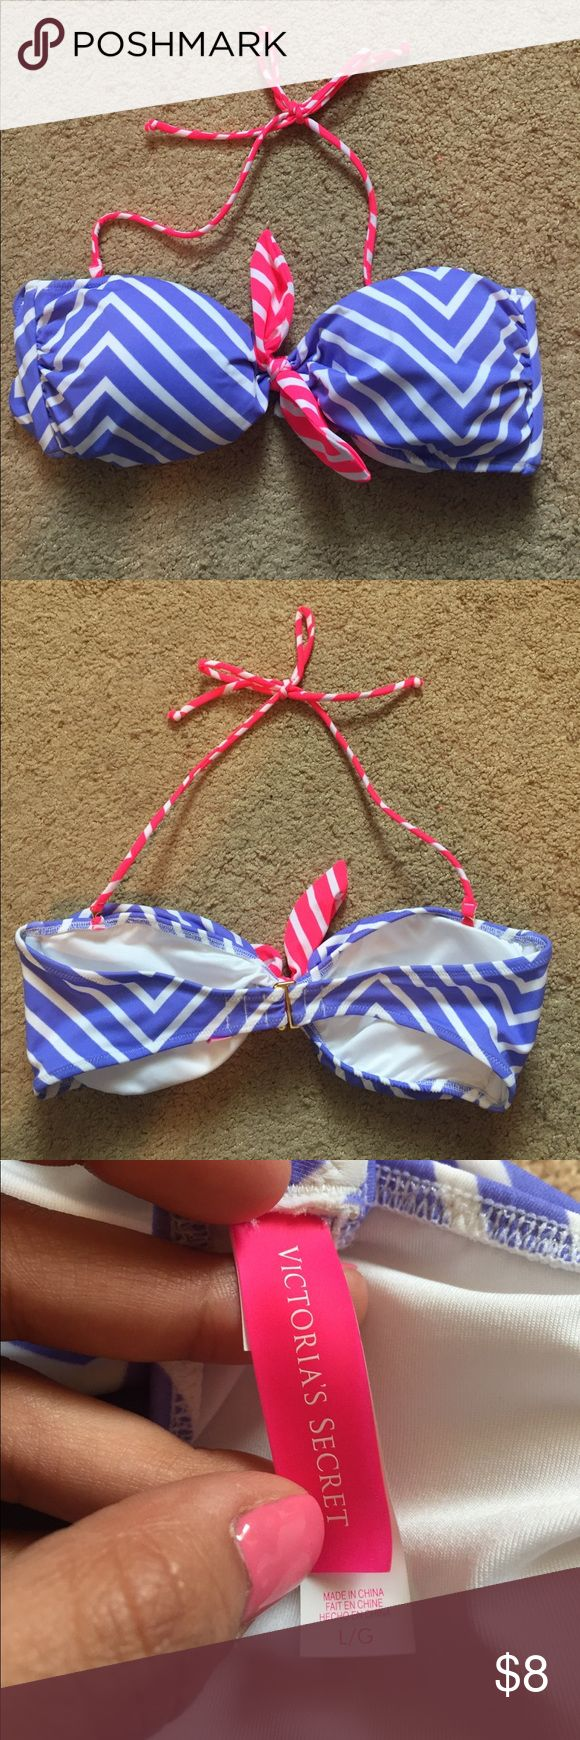 Victoria's Secret Chevron Bikini Top Bright purple and pink chevron patterned bikini top - padded and strapless with removable neck strap. Hardly worn, like new! (Too small for me now- fits more a C cup at max). PINK Victoria's Secret Swim Bikinis